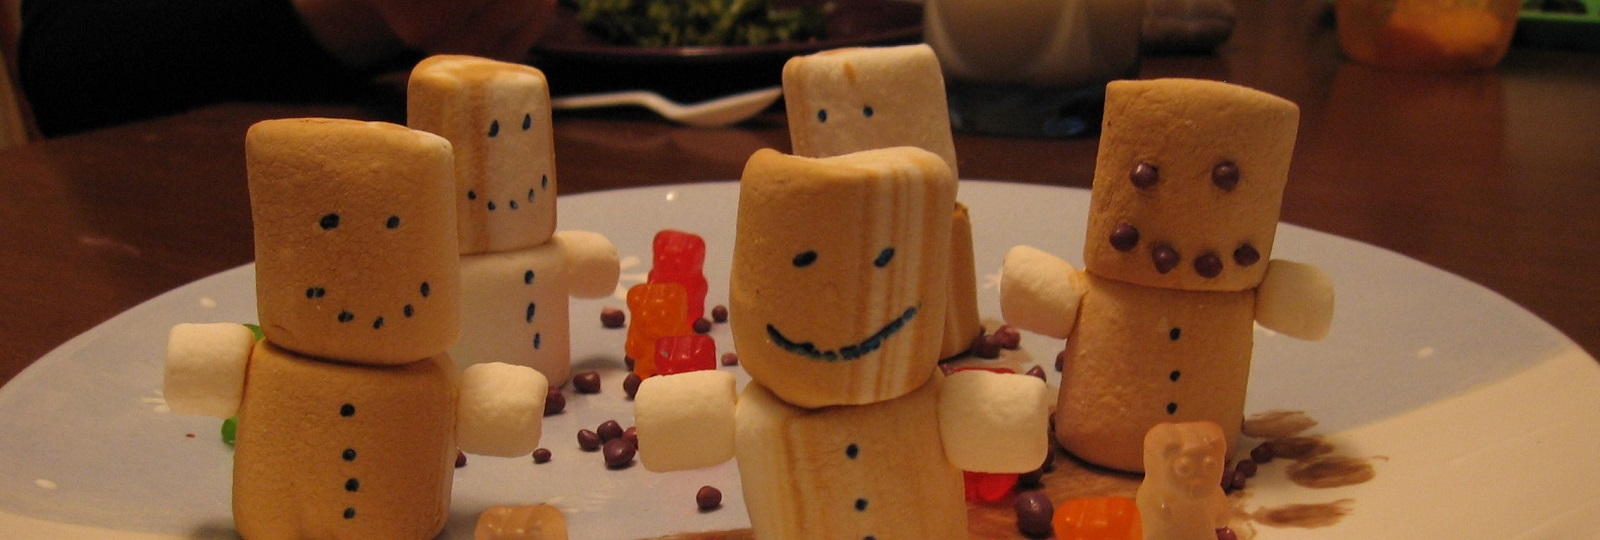 Marshmallow Figures